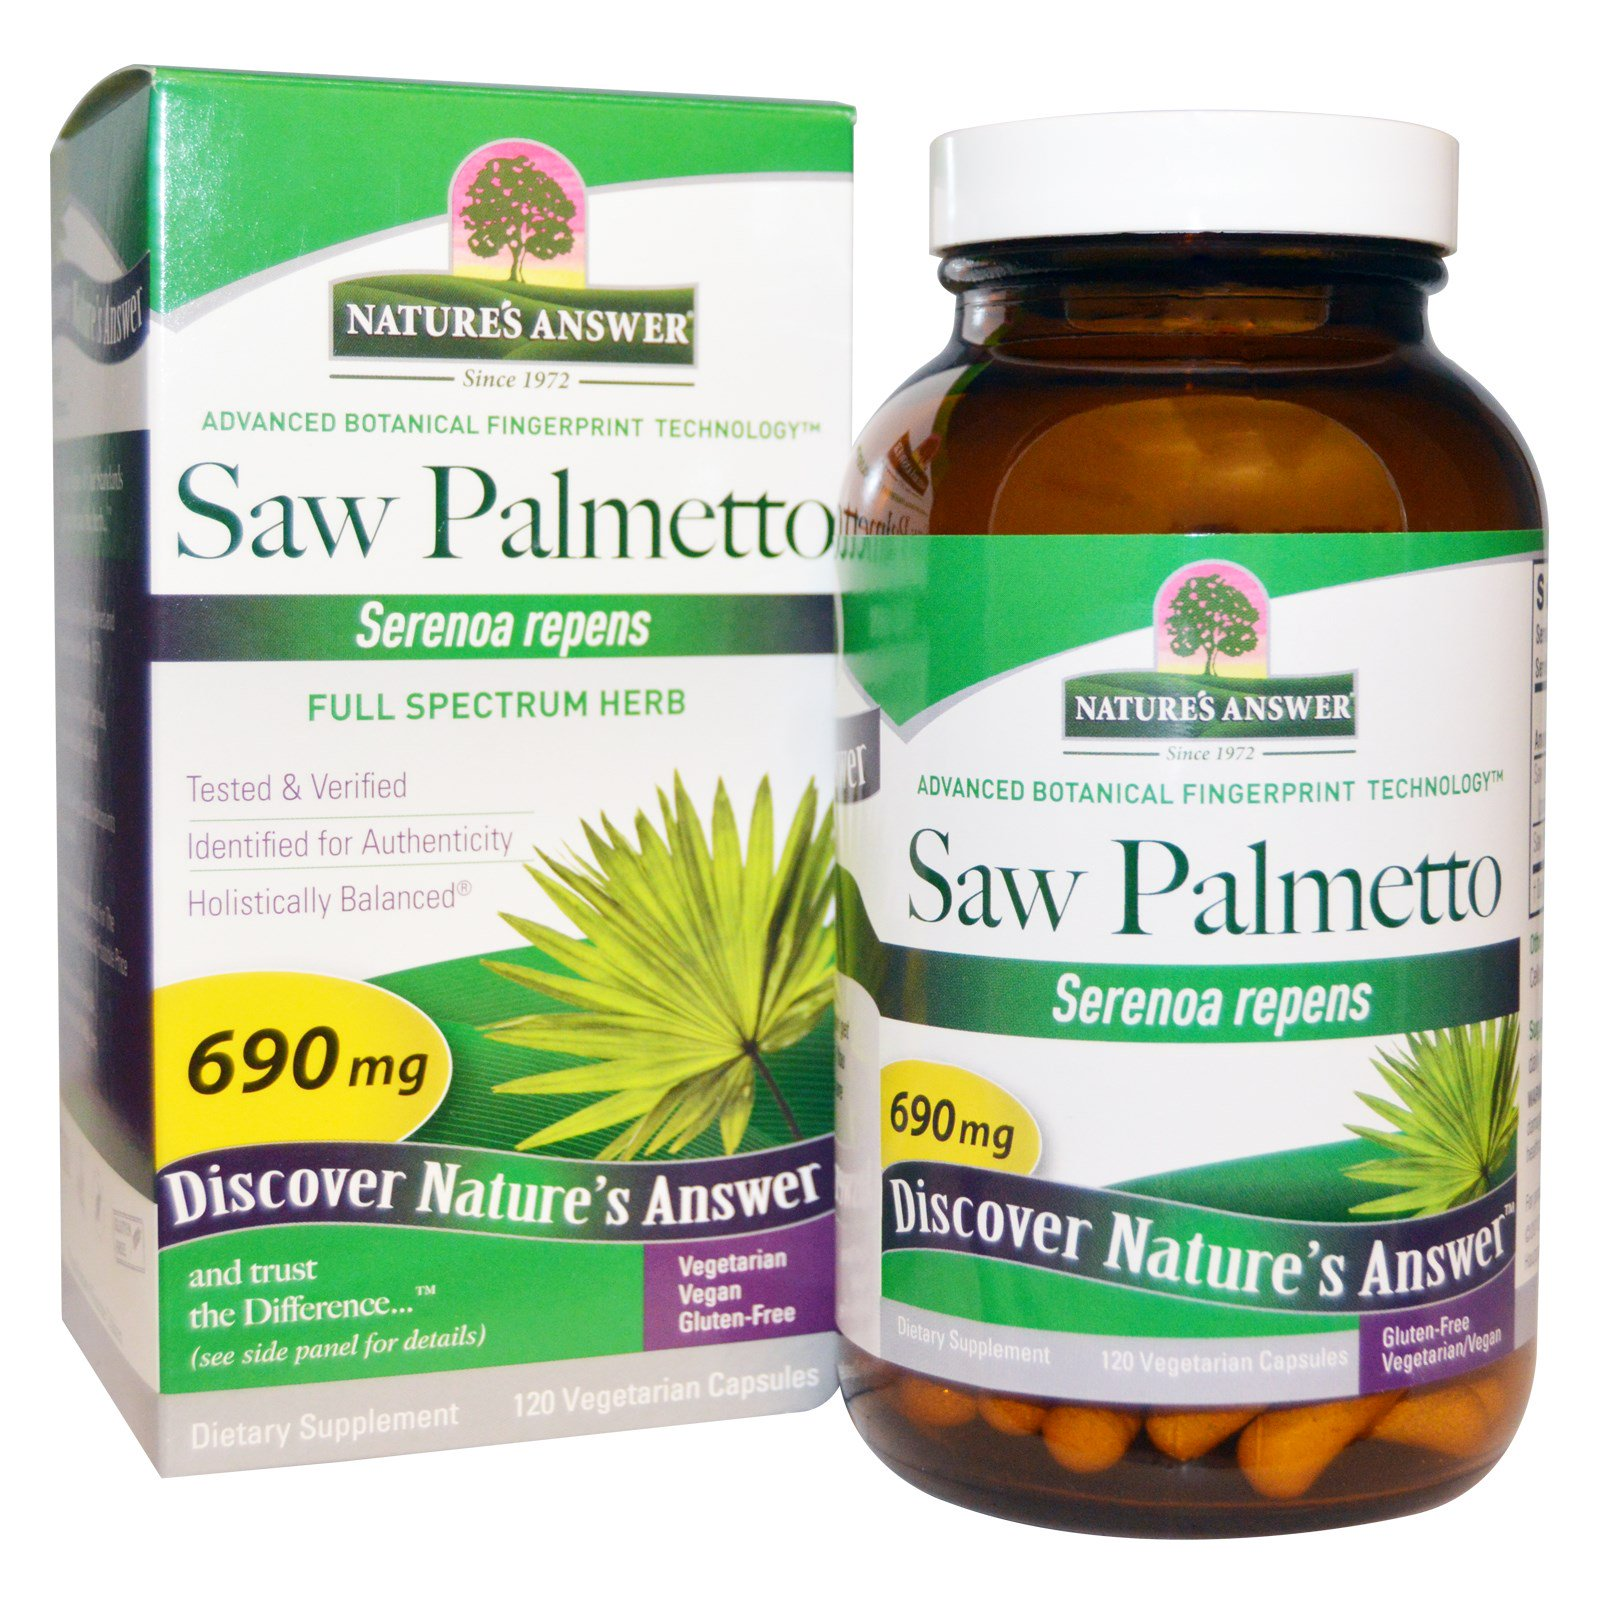 Image of Saw Palmetto, Full Spectrum Herb, 690 mg (120 Veggie Caps) - Nature's Answer 0083000164316